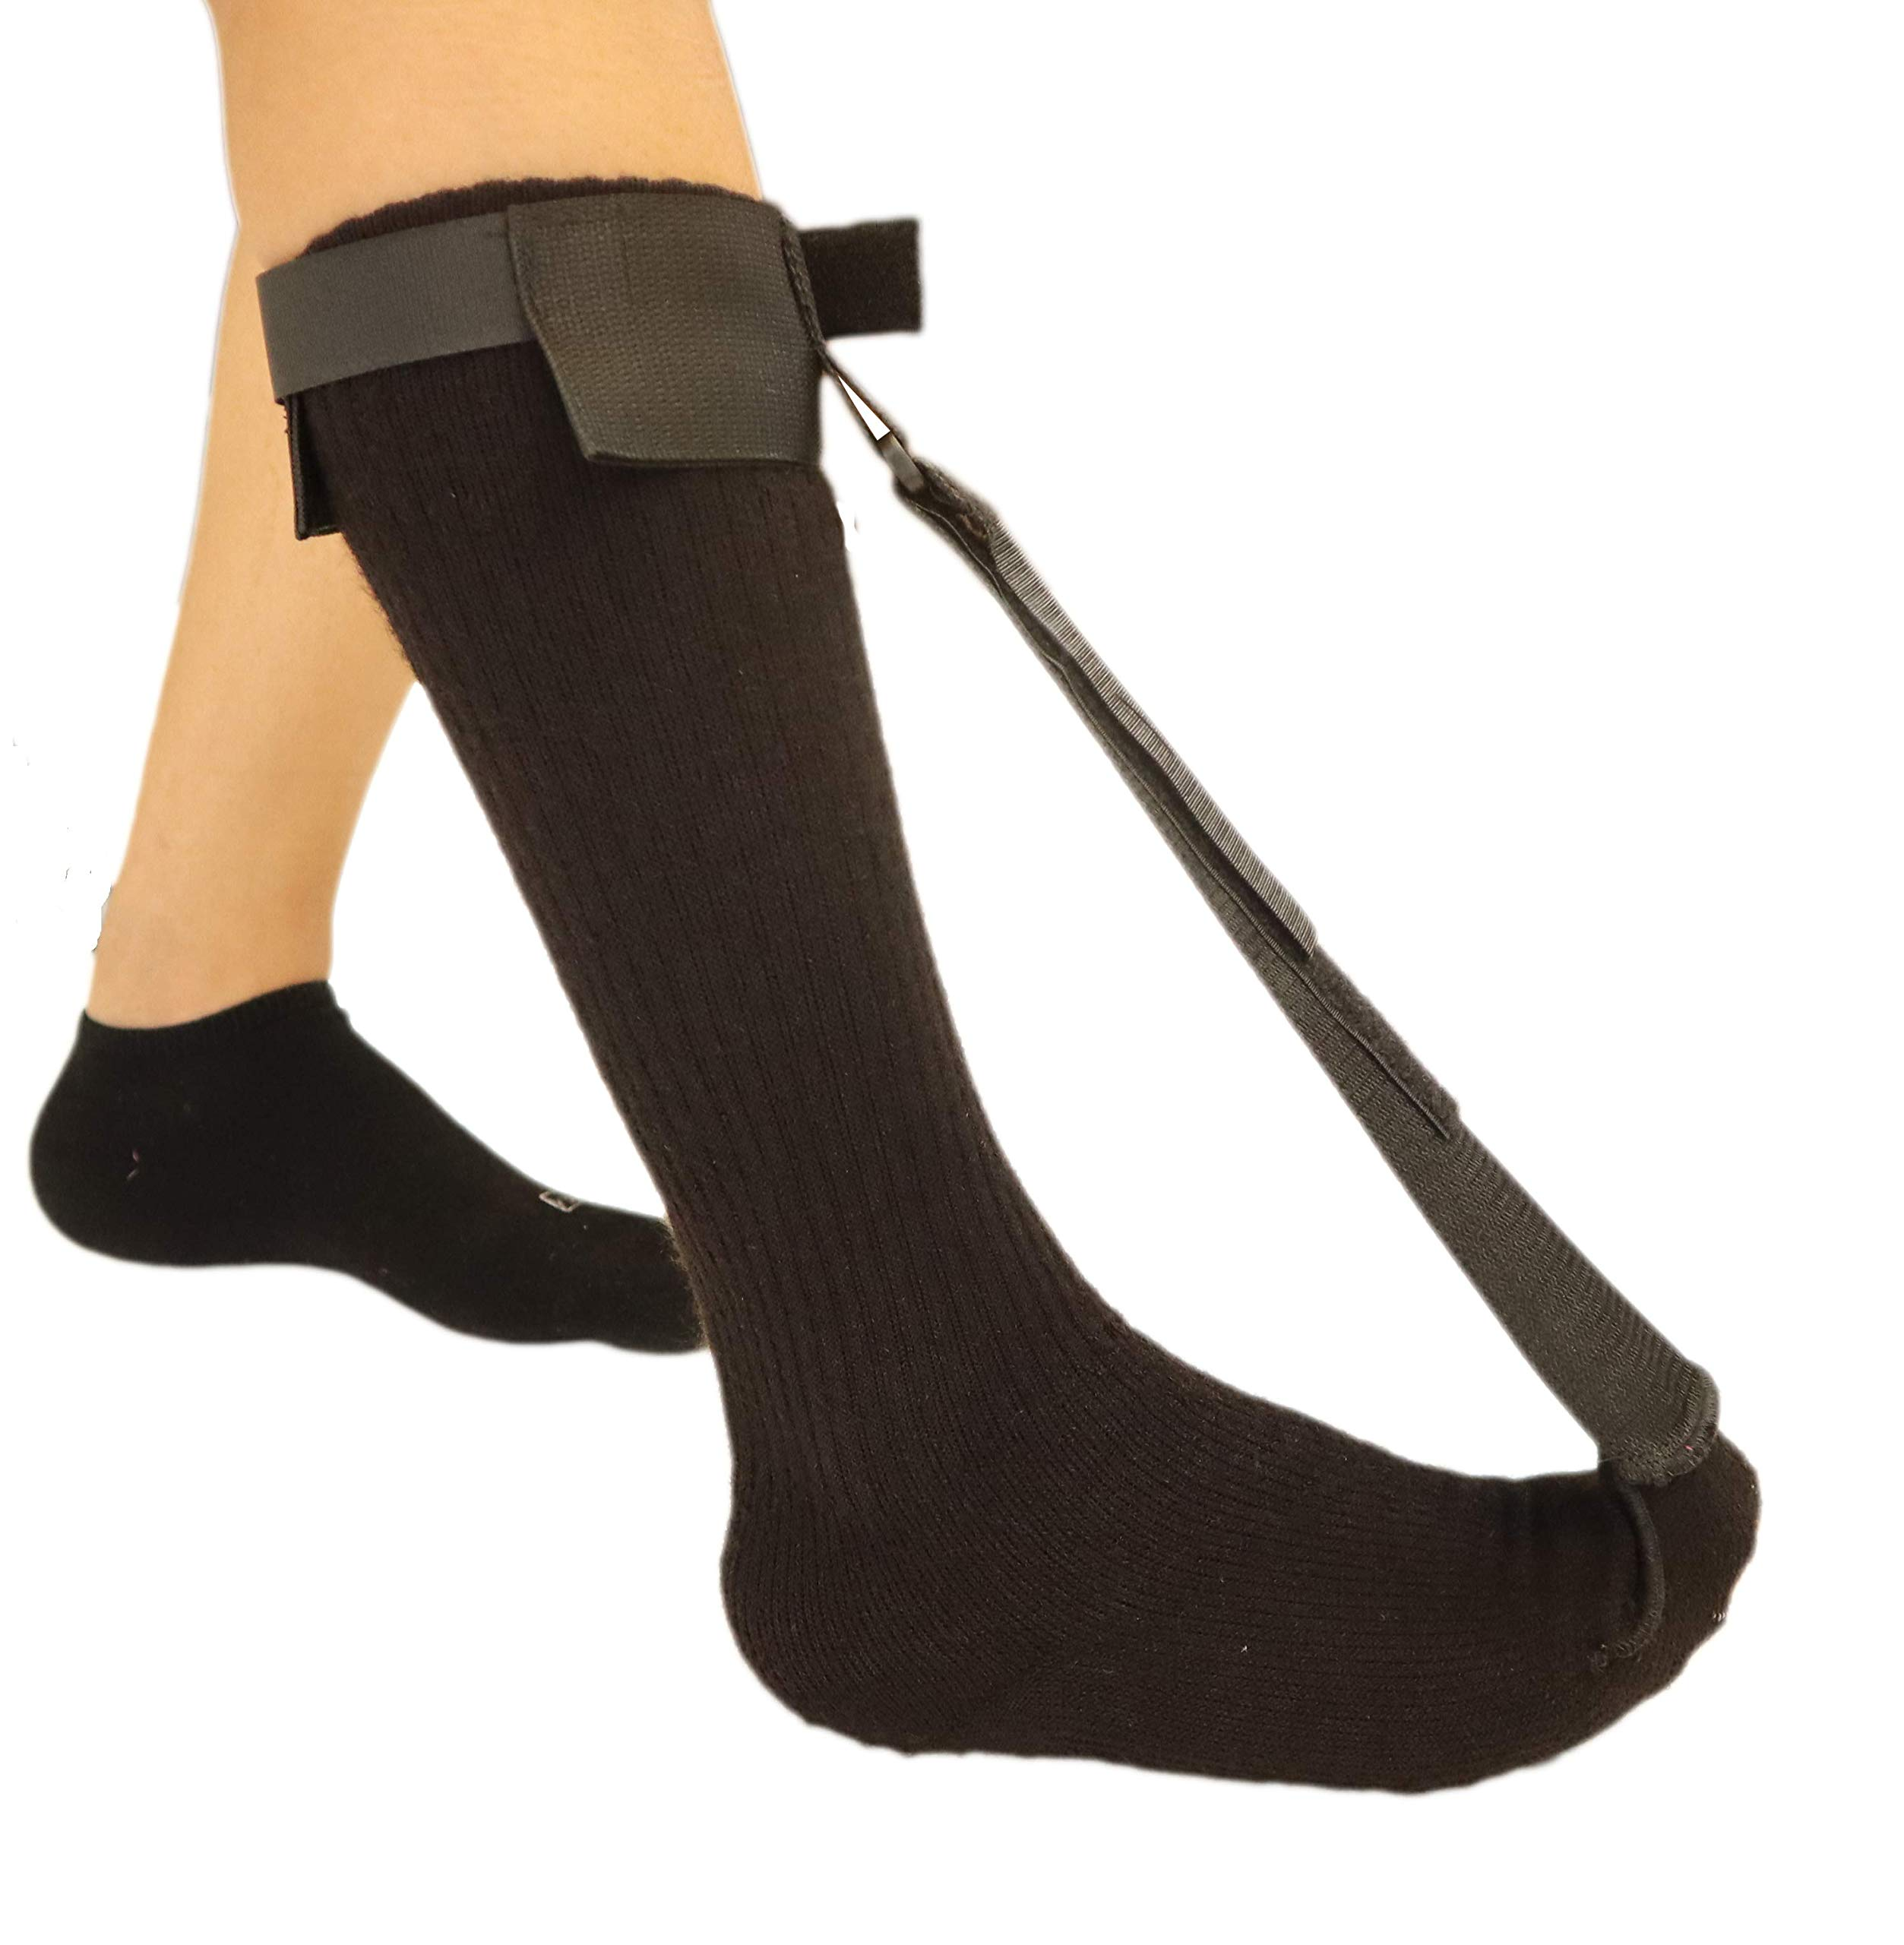 Plantar Fasciitis Stretch Night Sock - for Pain Relief from Plantar Fasciitis and Achilles Tendonitis - Black - L by MARS WELLNESS